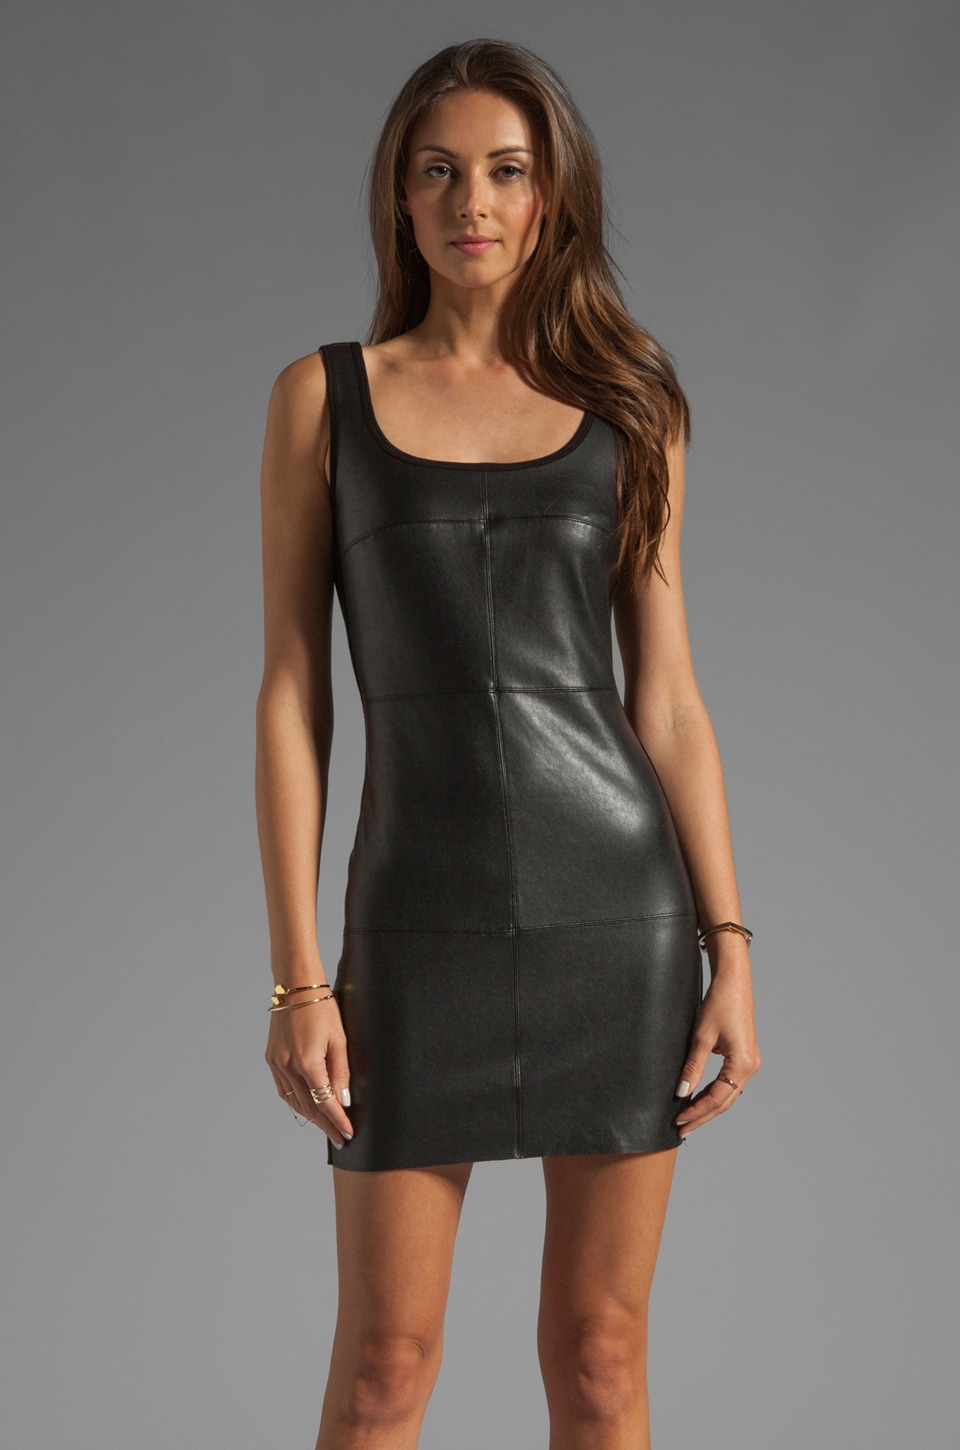 Bailey 44 Metador Dress in Negro